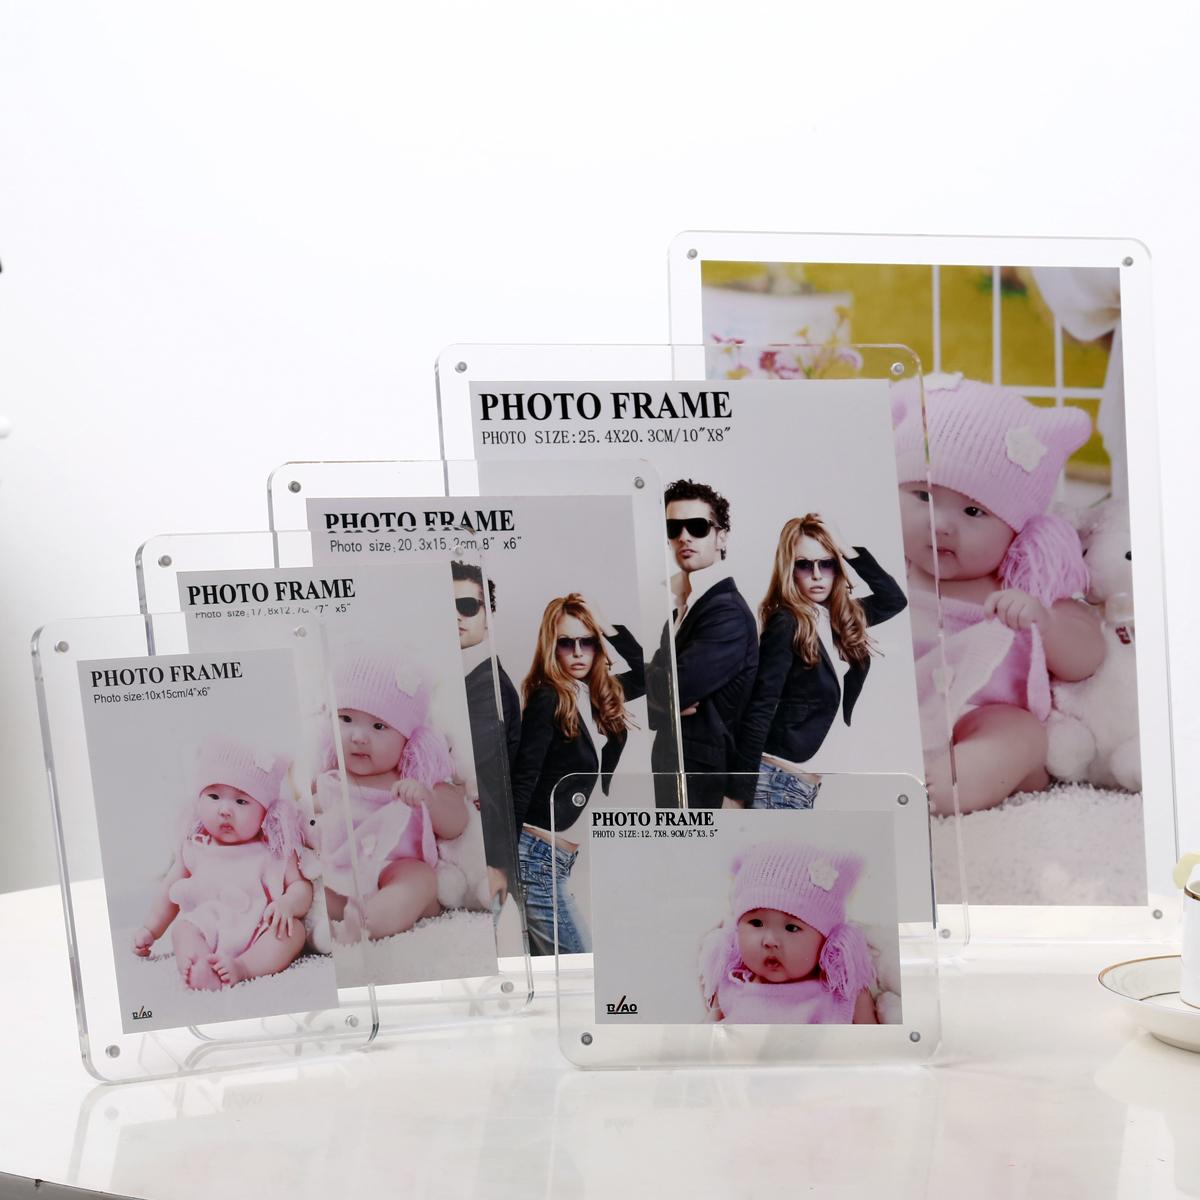 Acrylic photo frame swing sets creative wedding photo frame 5 inch 6 inch 7 inch 8 inch 10 inch 12 inch photo frame Tables placed customization